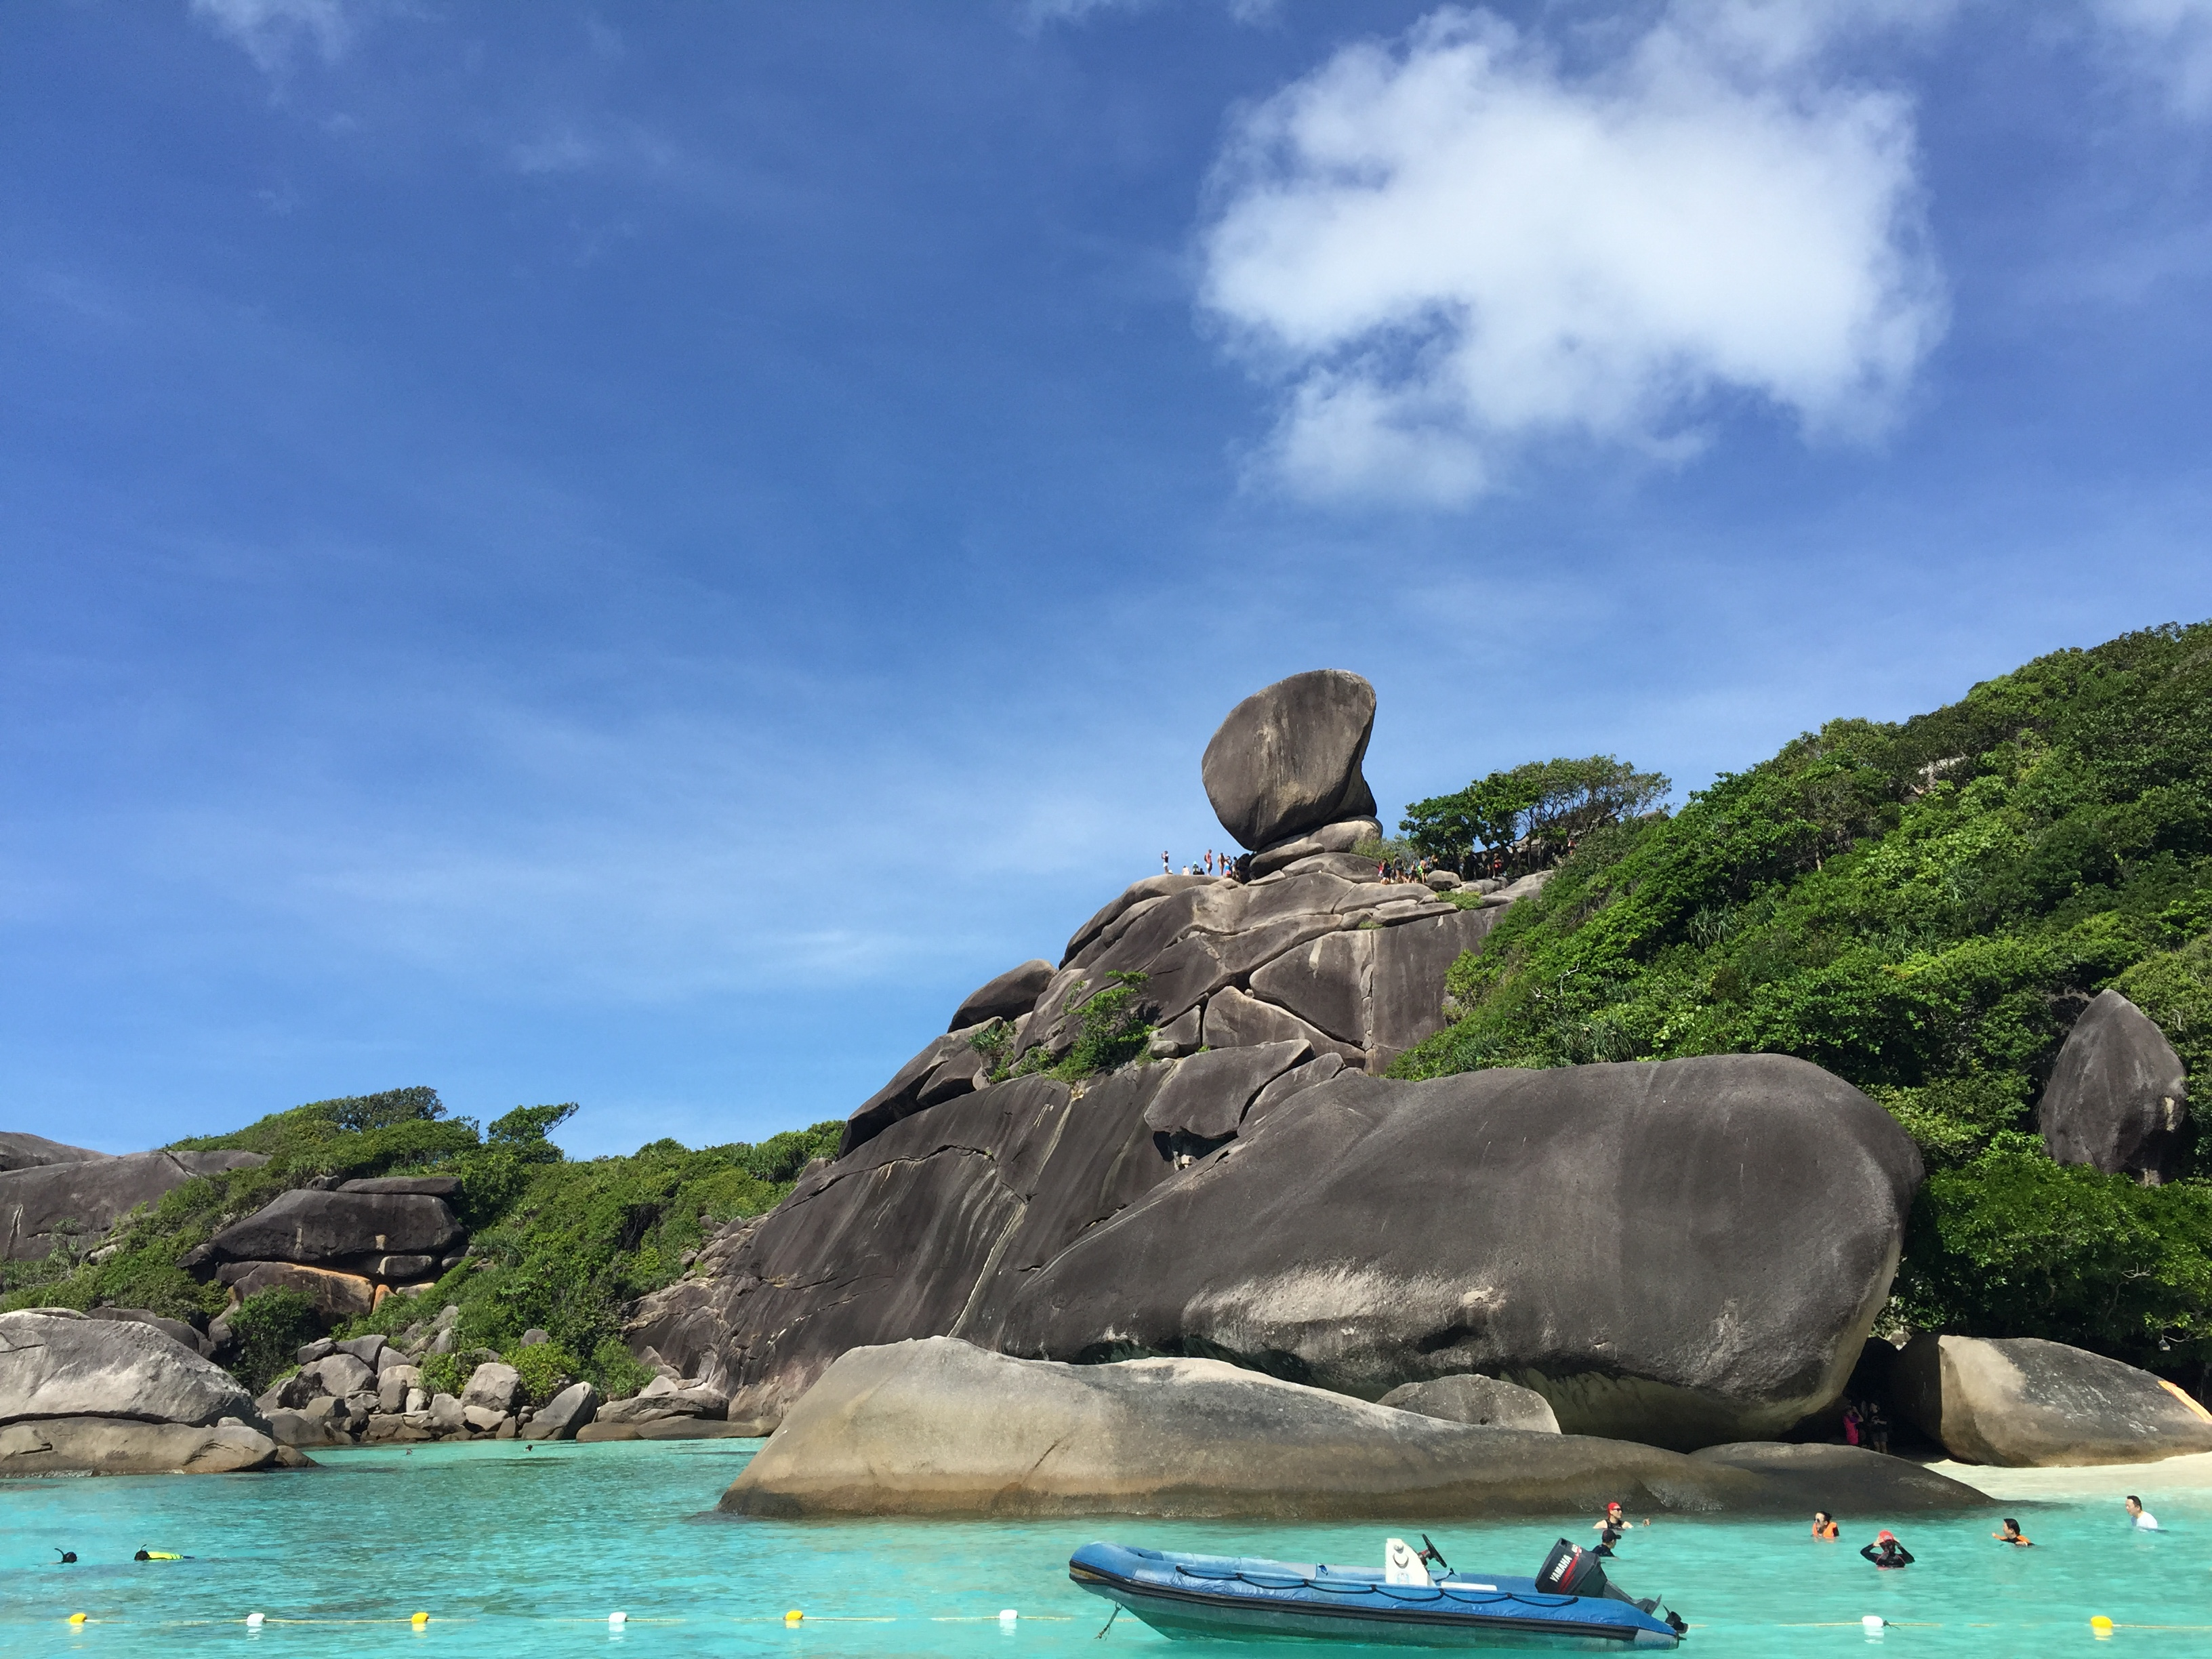 Similan Islands - Little pieces of beauty